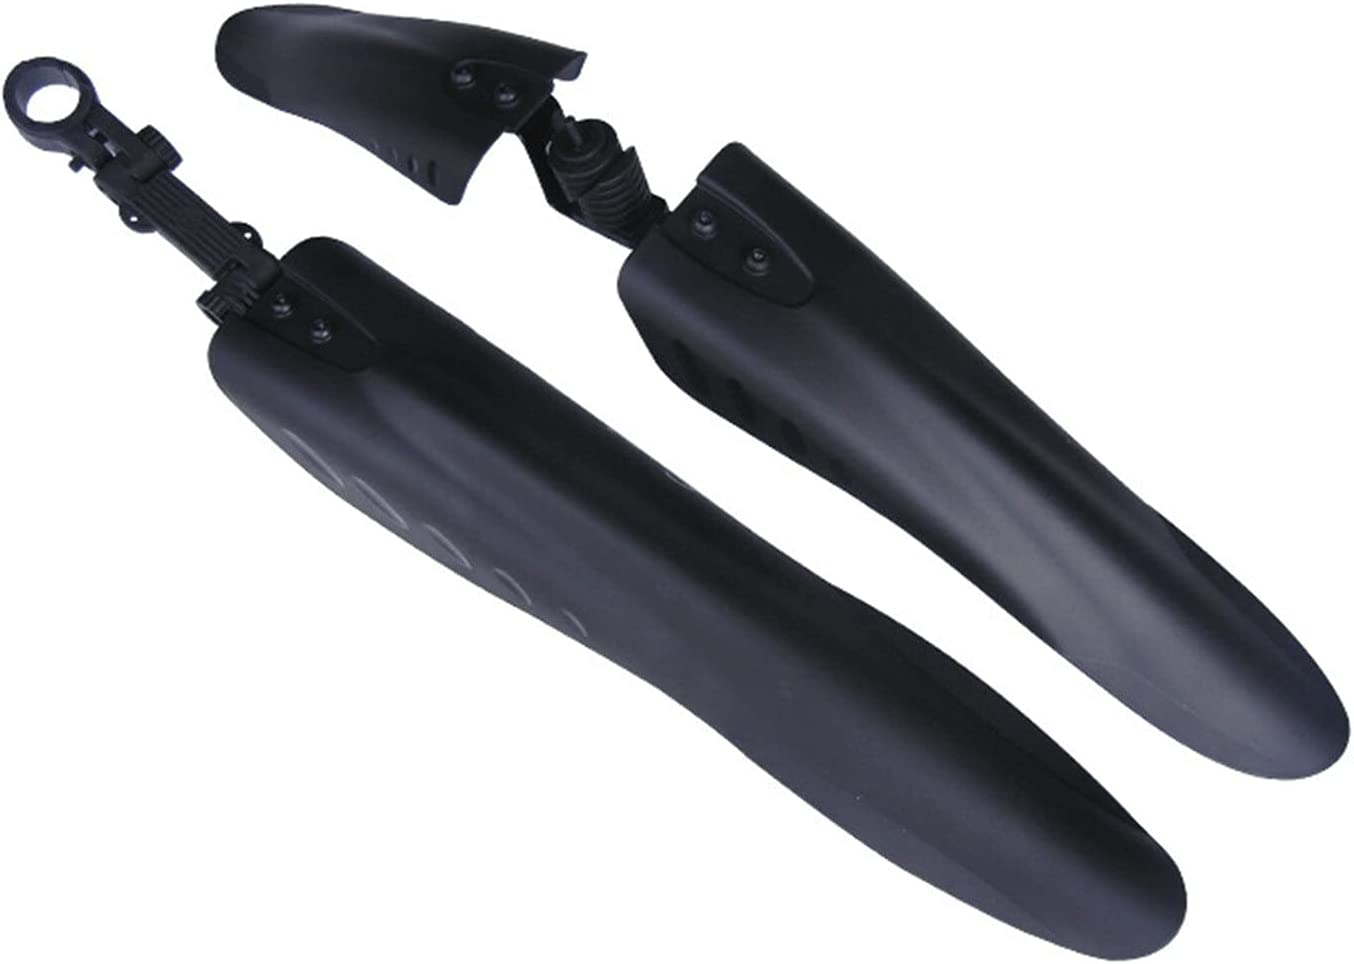 YAZUDN 2Pcs Bicycle Fenders Max 85% OFF Mountain Front Mudguard Bike Los Angeles Mall Re Road